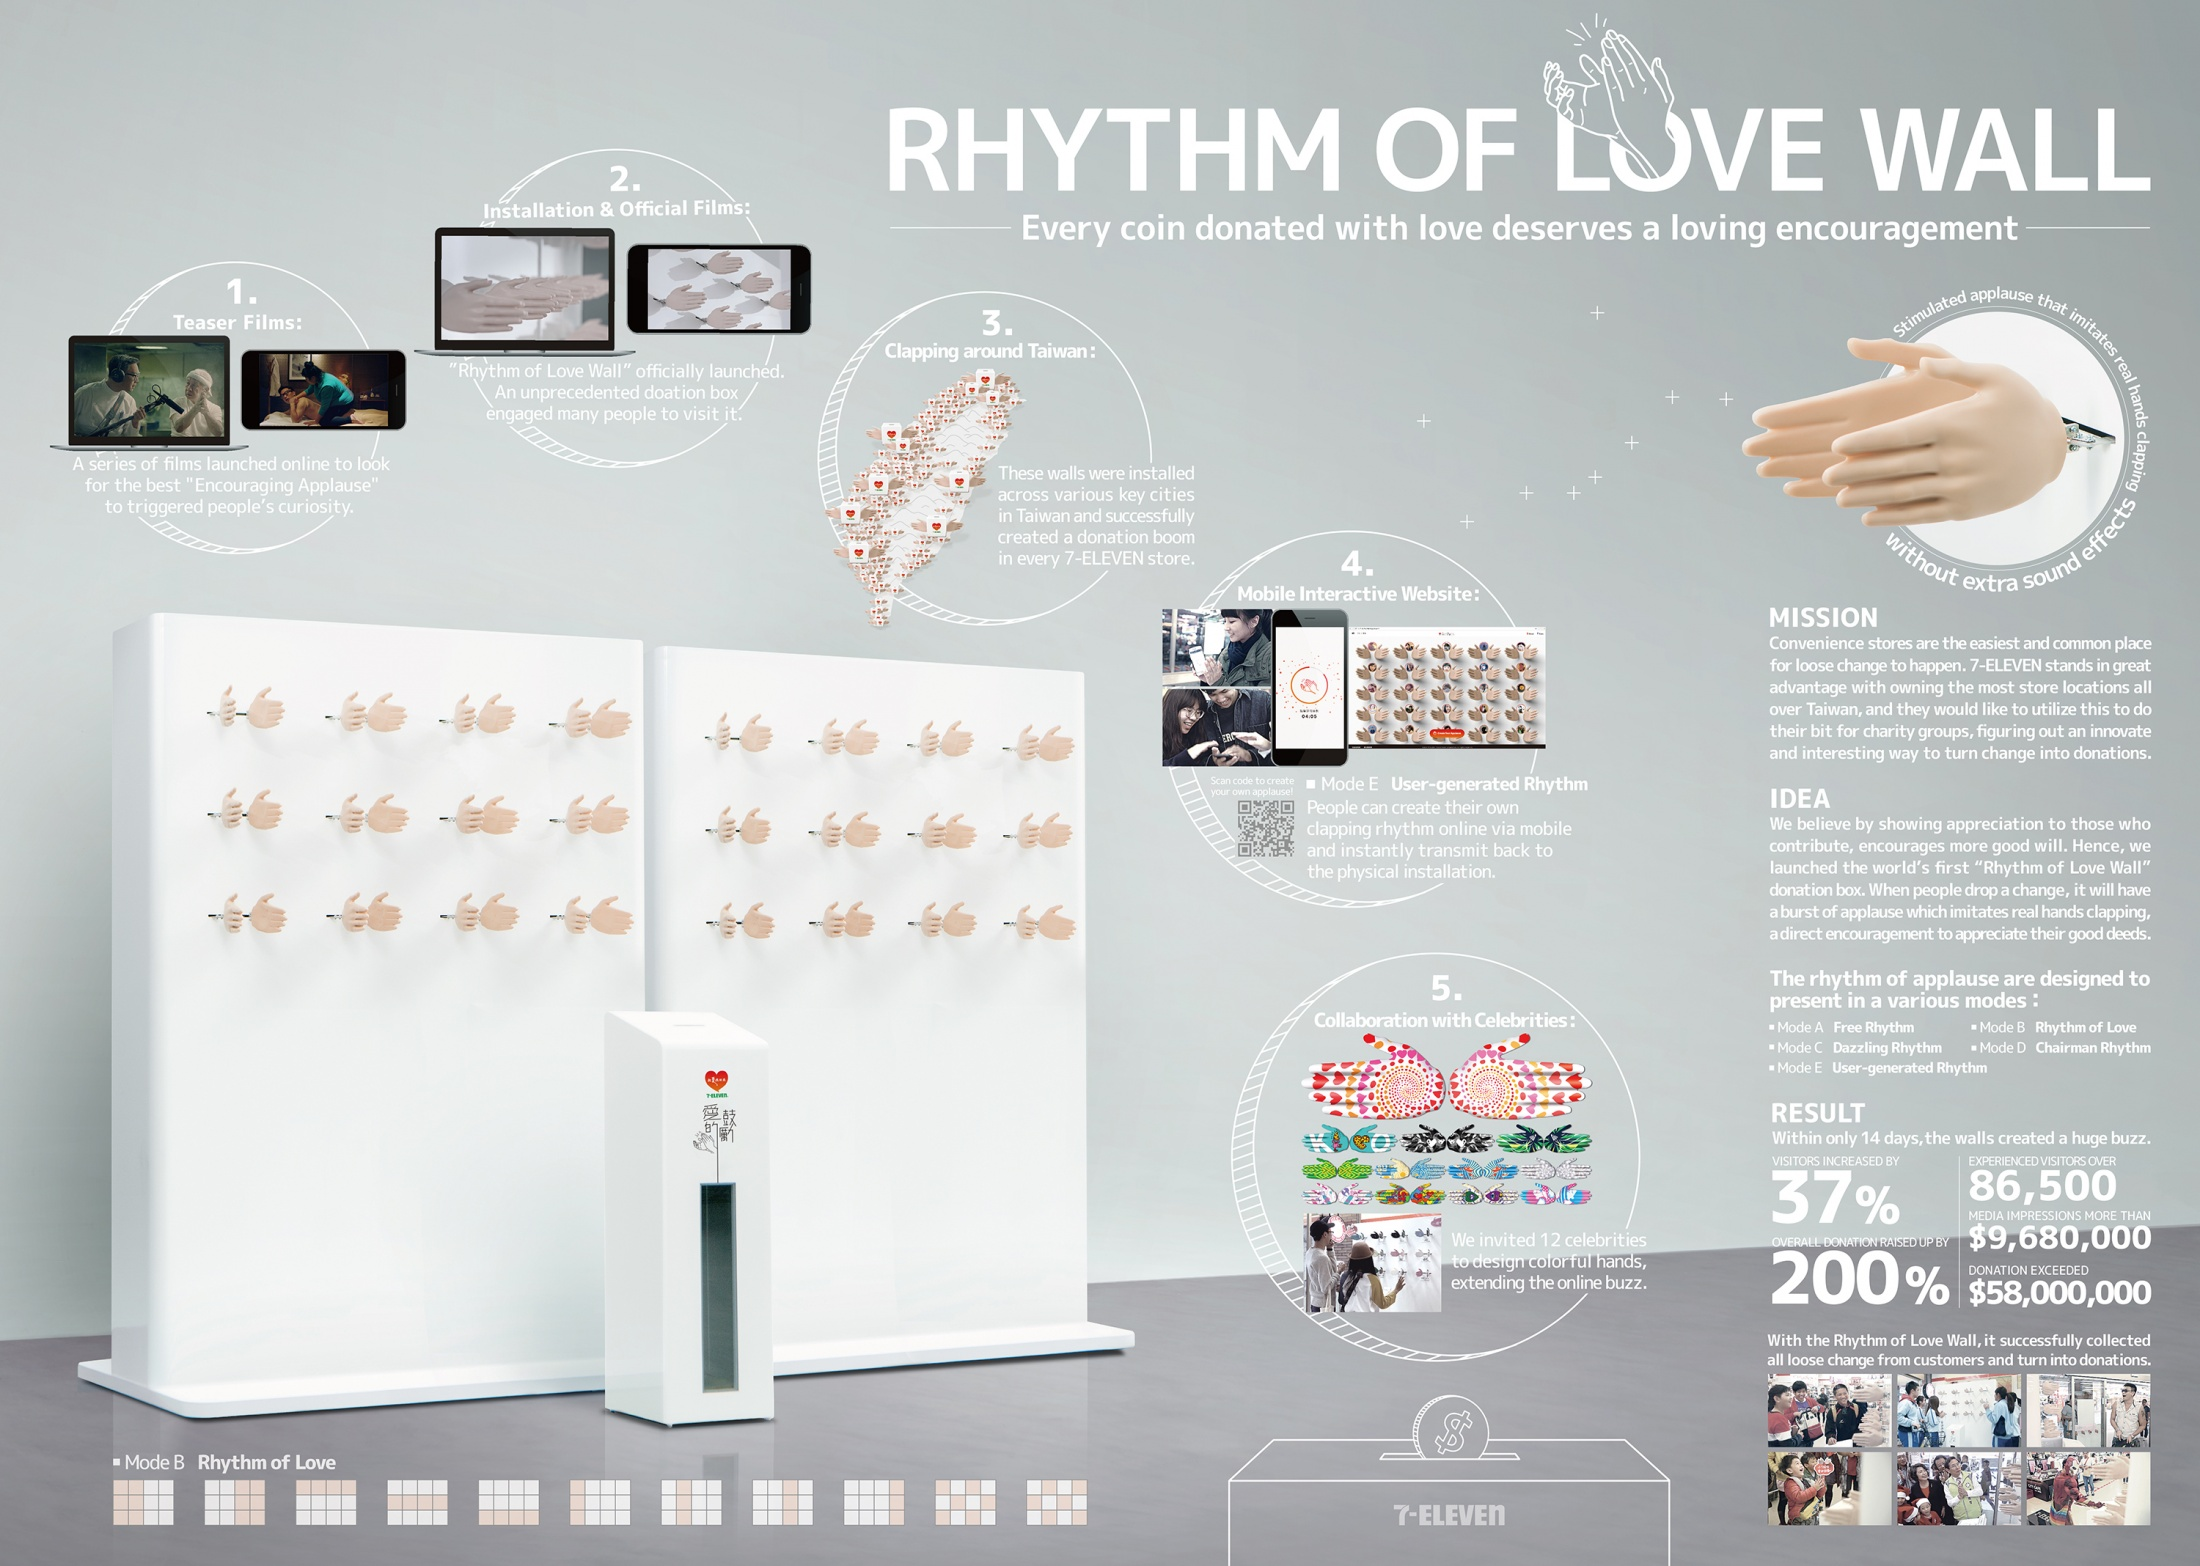 Image Media for Rhythm of Love Wall